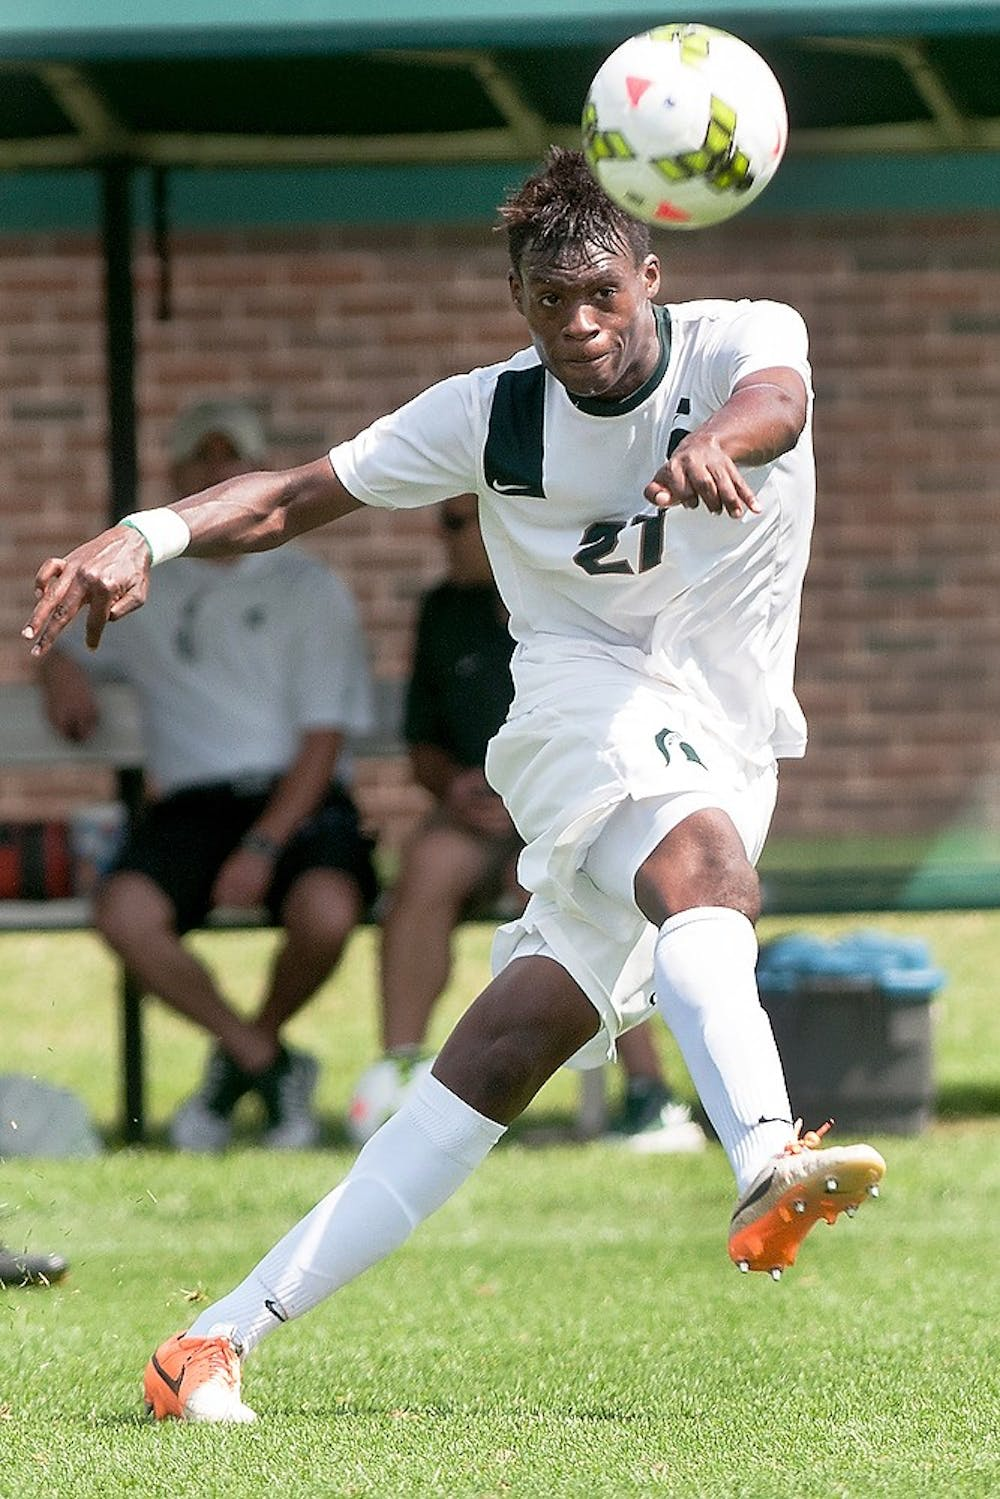 <p>Senior midfielder Fatai Alashe passes the ball during a game against Florida International University Aug. 31, 2014, at DeMartin Soccer Stadium at Old College Field. The Spartans defeated the Panthers, 3-0. Raymond Williams/The State News</p>